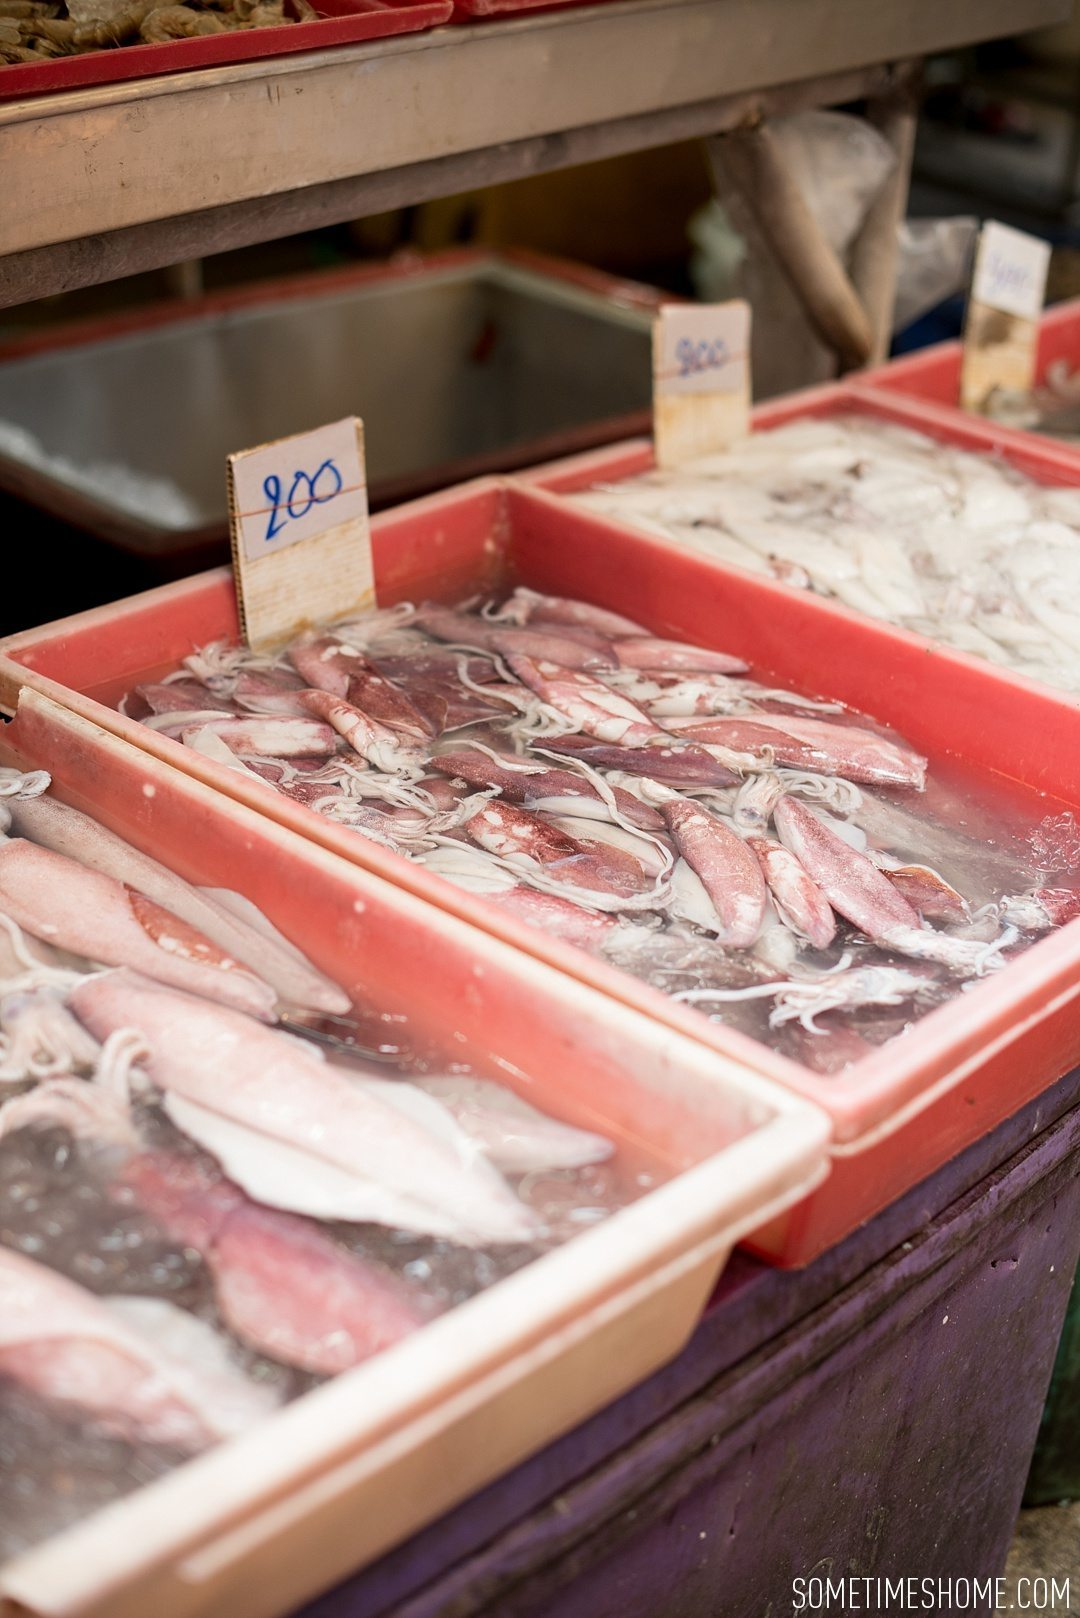 Fascinating Bangkok Place to Visit: Bangrok Tour, East Meets West by Sometimes Home travel blog. Photo of fish at the local market.